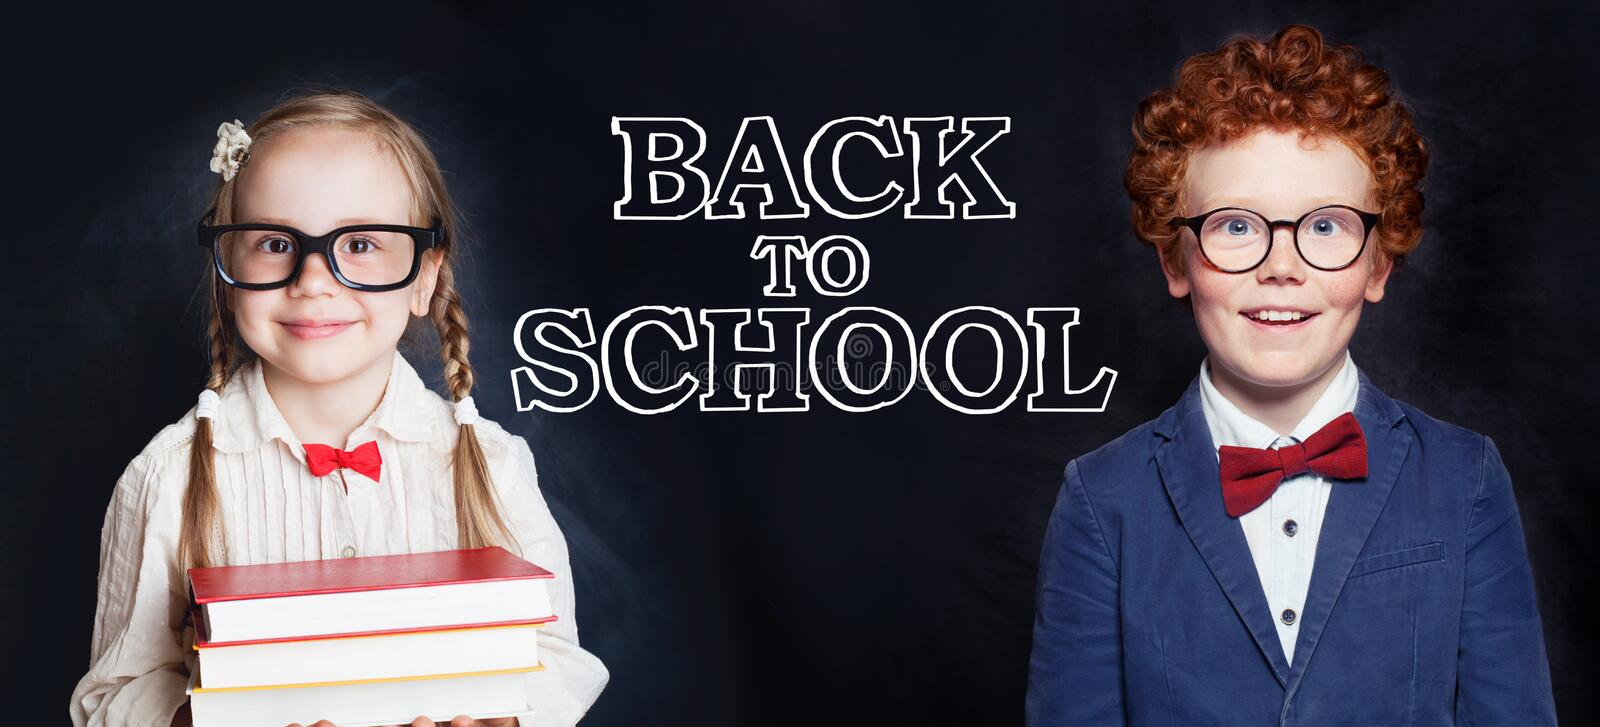 Cute smart kids boy and girl on blackboard background. Back to school concept stock image